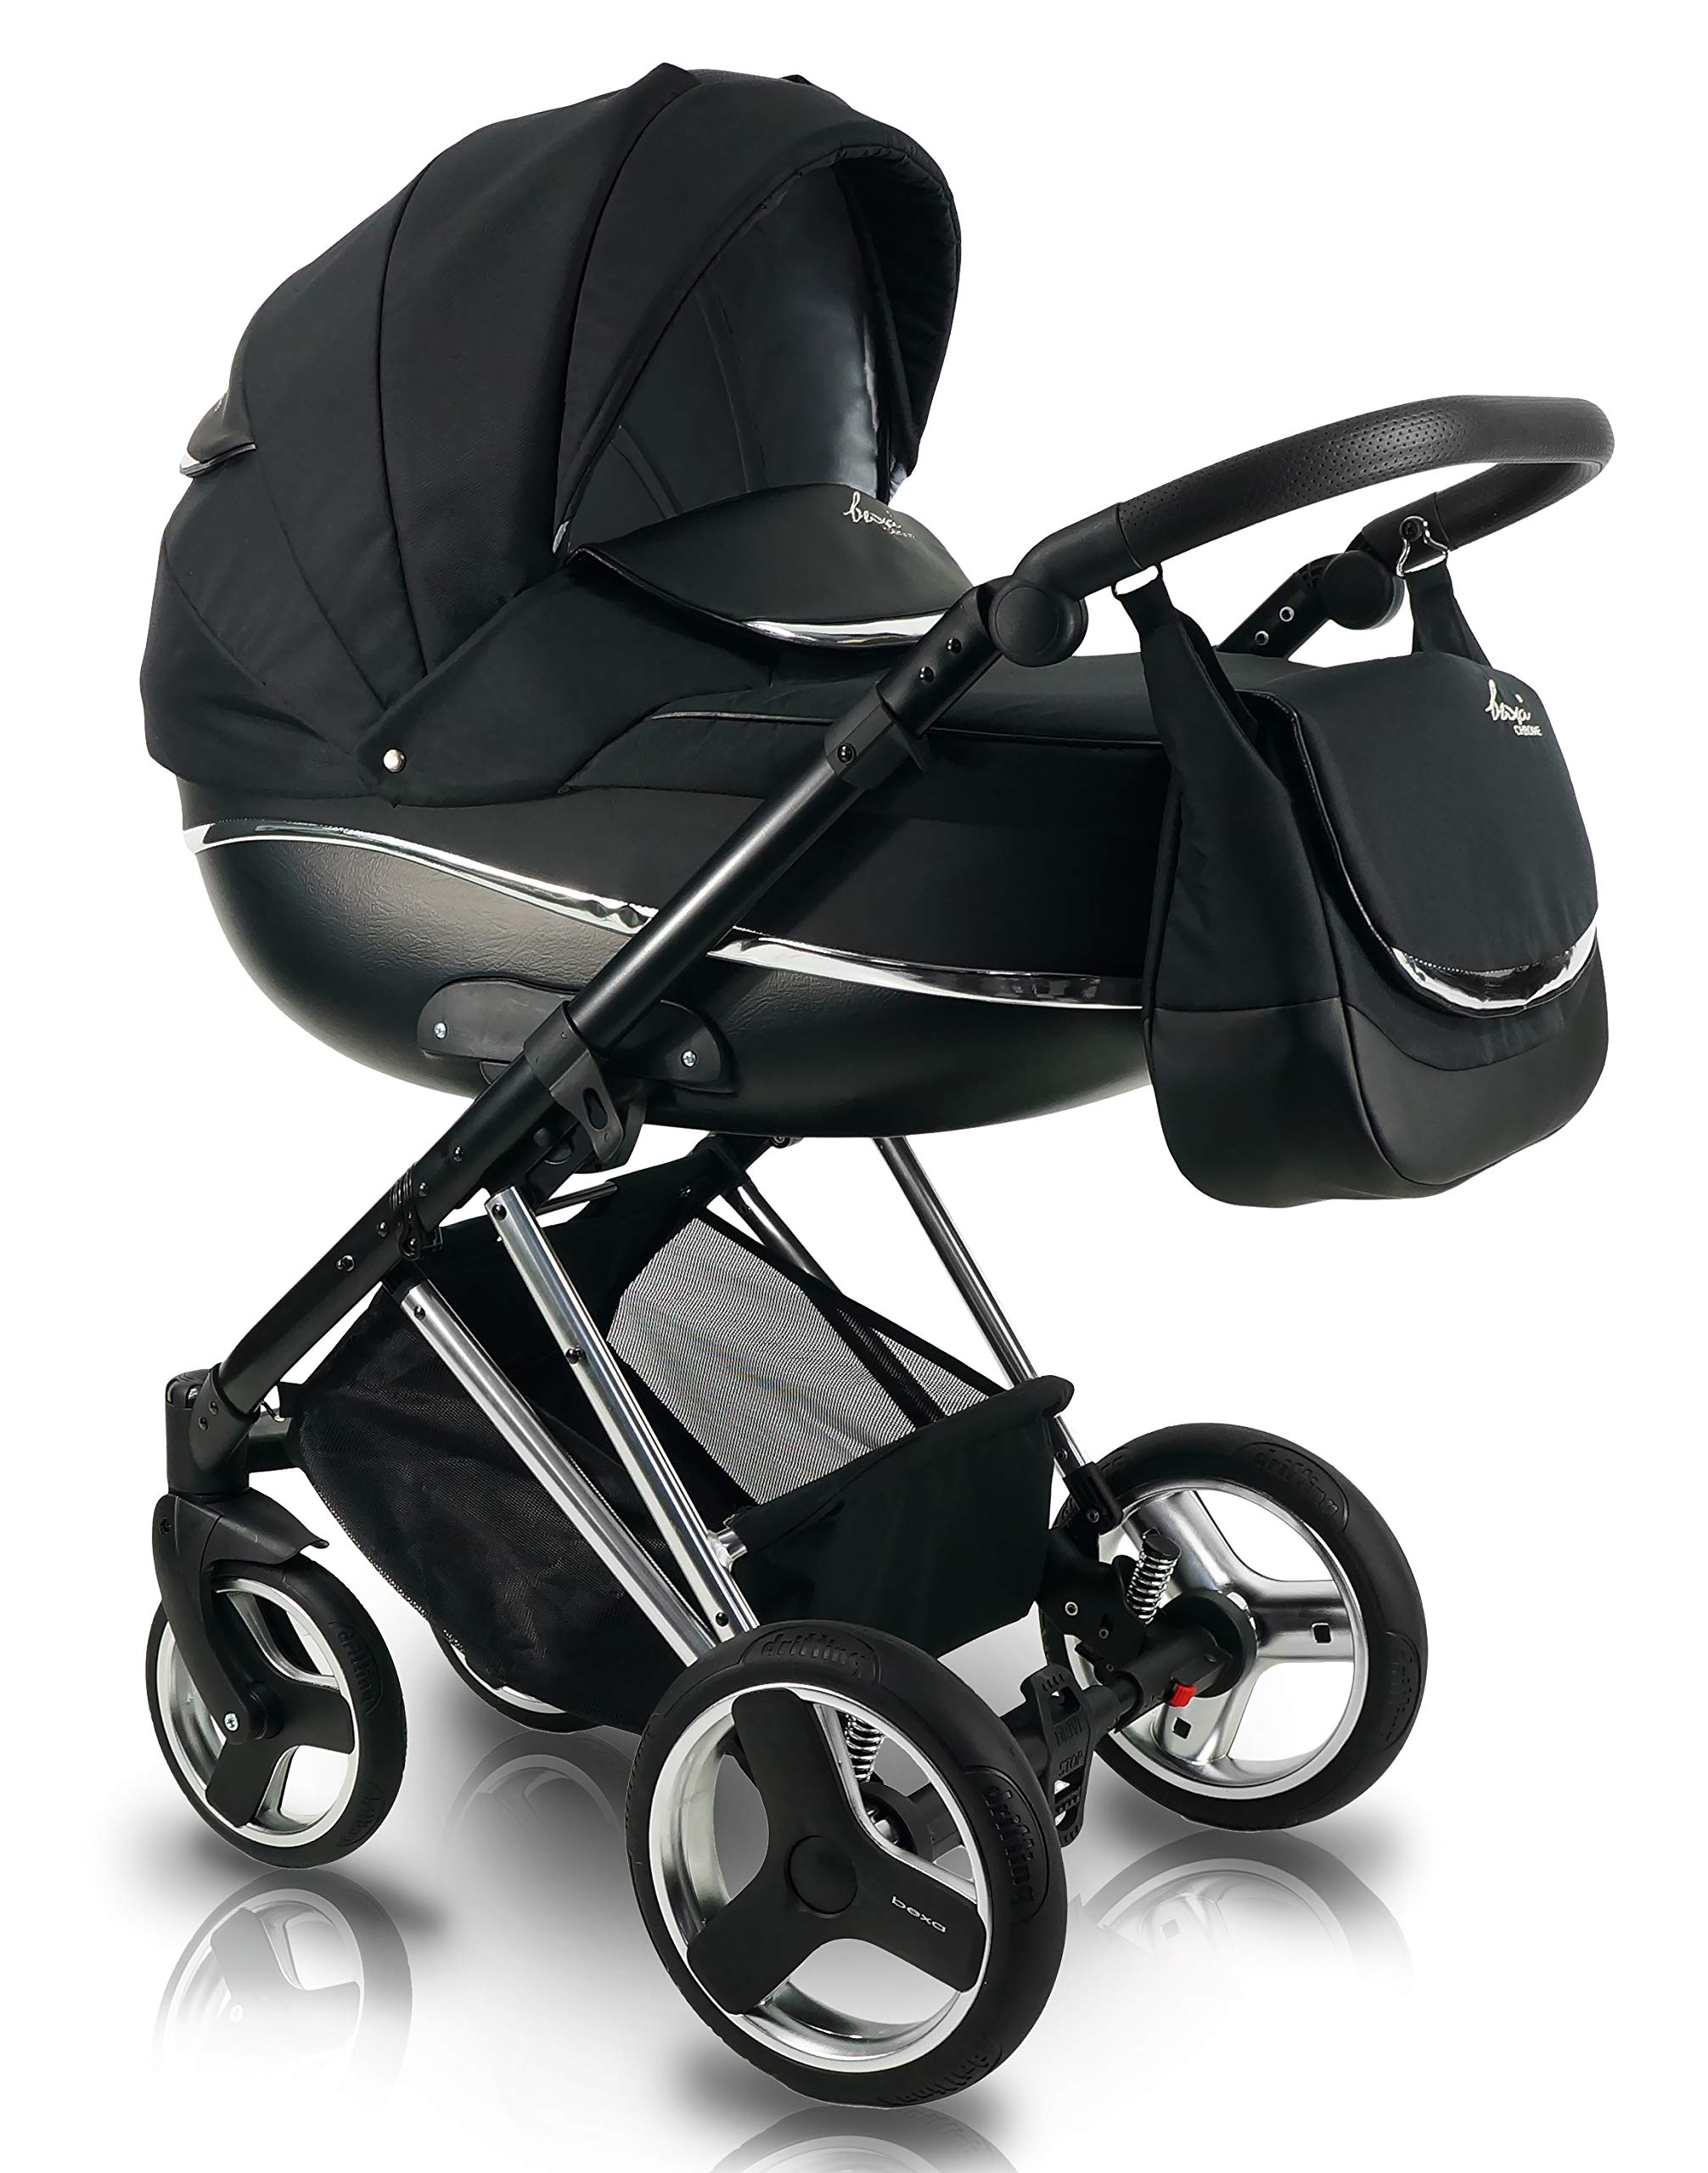 SaintBaby Stroller Buggy Baby seat Car seat Next II Gold Chrome Gold N1 4in1 with Isofix SaintBaby If you want the black frame instead of the gold frame, please inform us after the purchase. 3in1 or 2in1 Selectable. At 3in1 you will also receive the car seat (baby seat). Of course you get the baby tub (classic pram) as well as the buggy attachment (sports seat) no matter if 2in1 or 3in1. The car naturally complies with the EU safety standard EN1888. During production and before shipment, each wagon is carefully inspected so that you can be sure you have one of the best wagons. Saintbaby stands for all-in-one carefree packages, so you will also receive a diaper bag in the same colour as the car as well as rain and insect protection free of charge. With all the colours of this pram you will find the pram of your dreams. 2